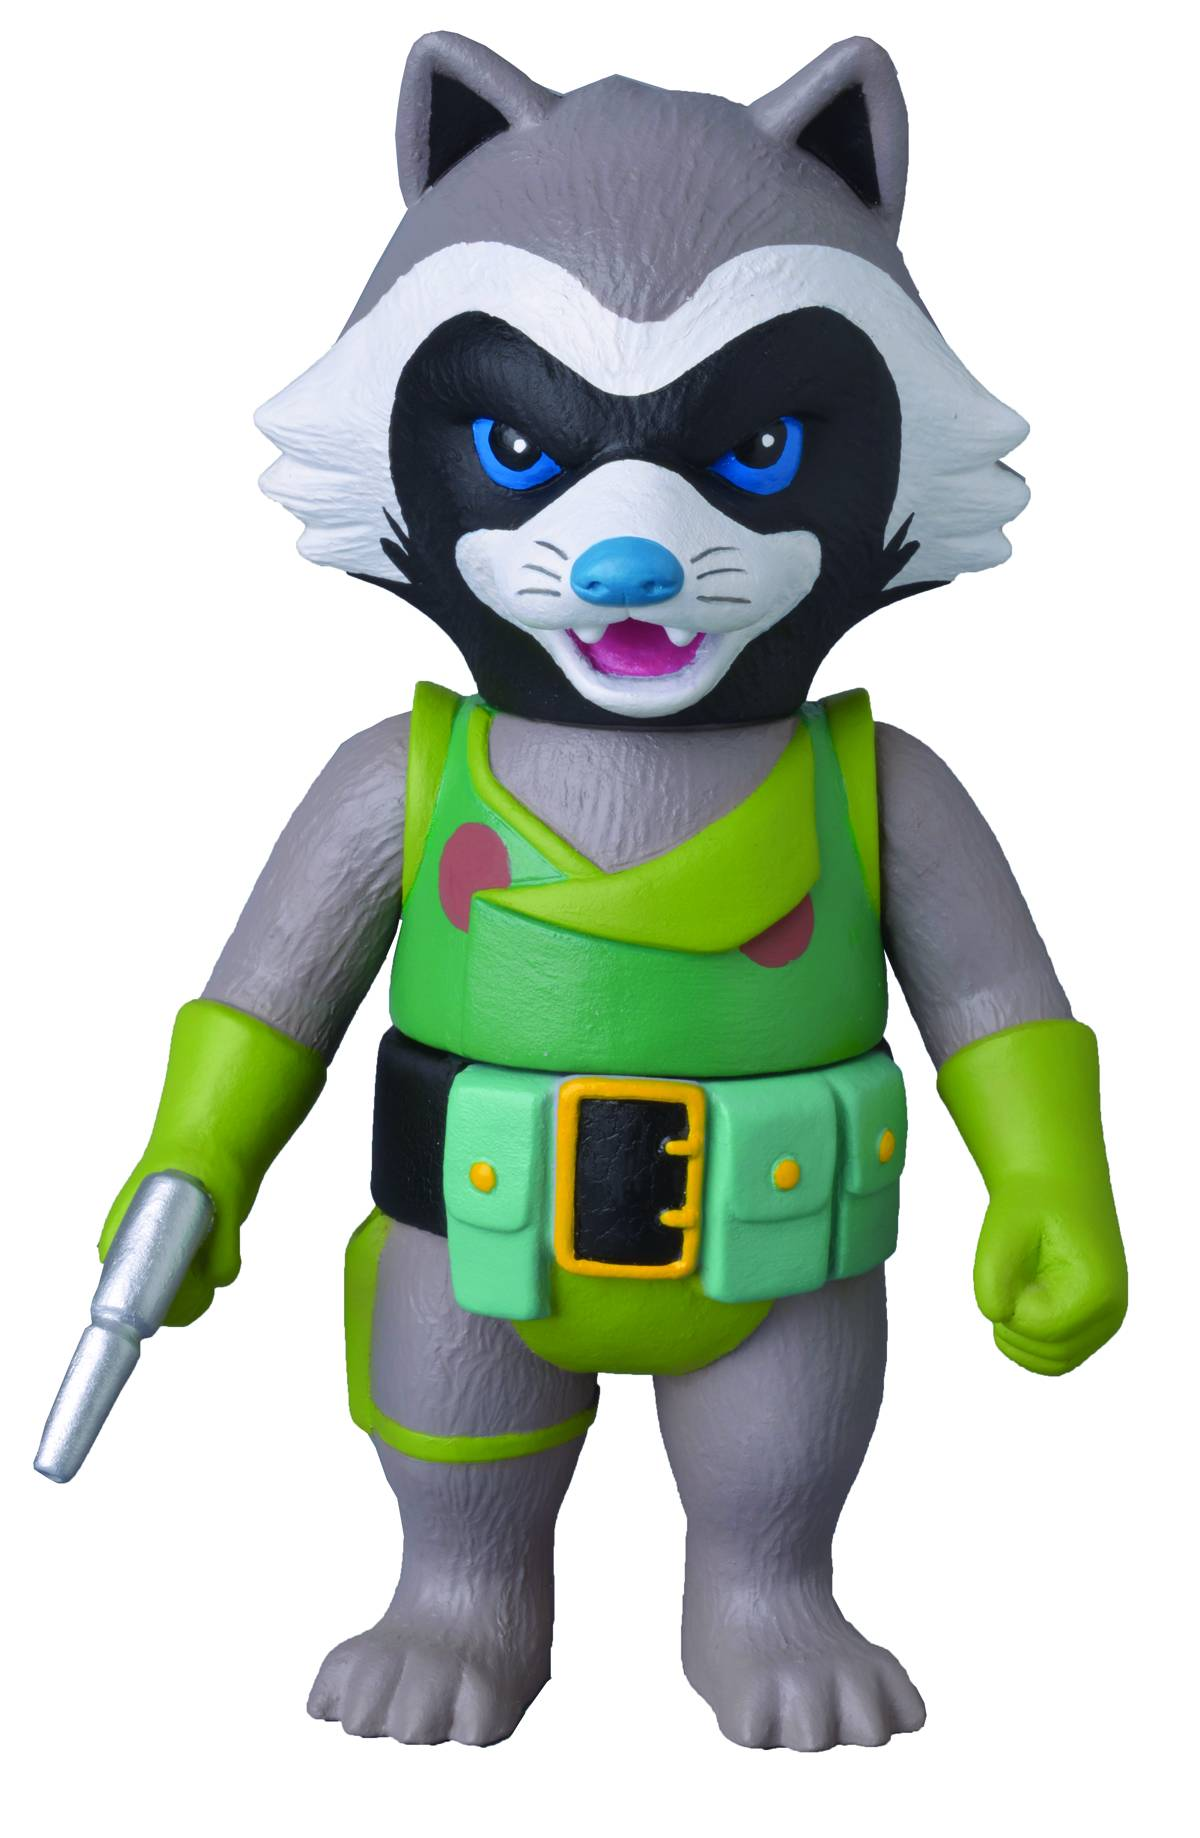 TOY NEWS: Rocket Raccoon Gets the Sofubi Treatment